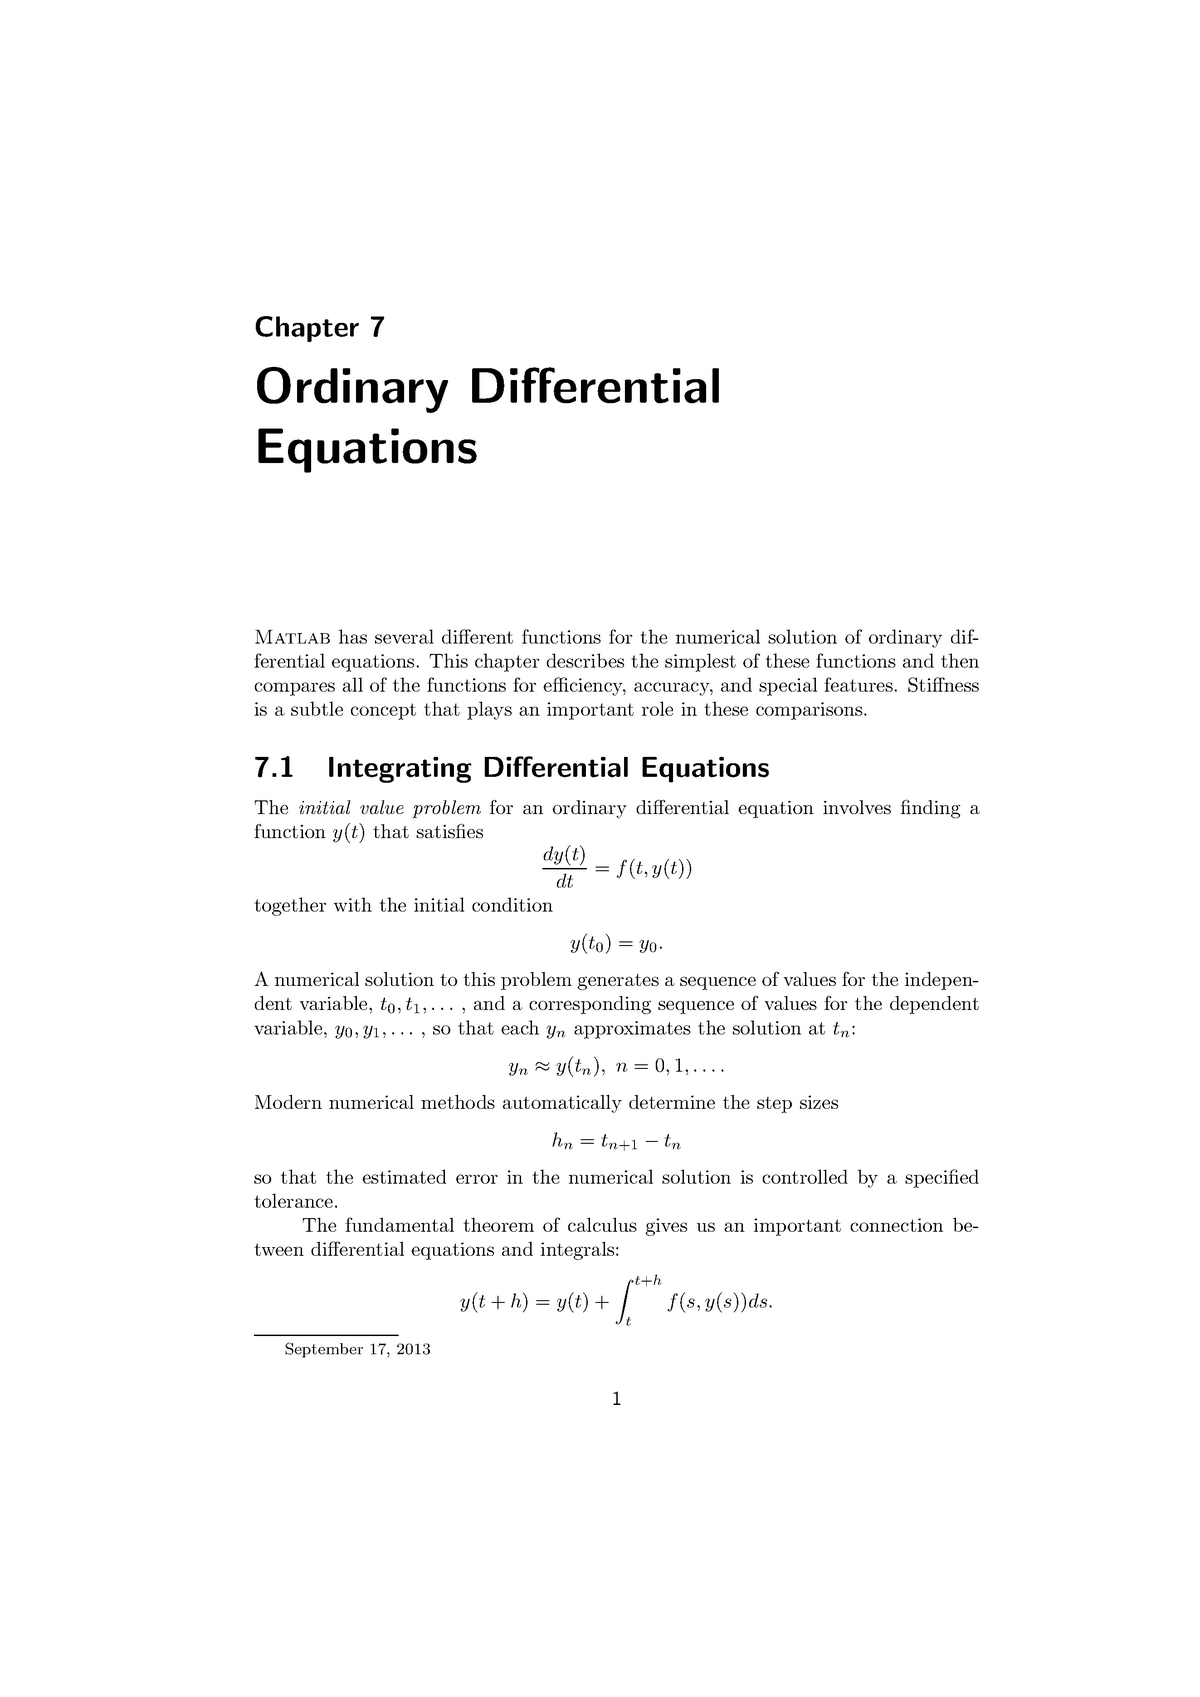 Ordinary Differential Equations - ME41060: Matlab in Engineering